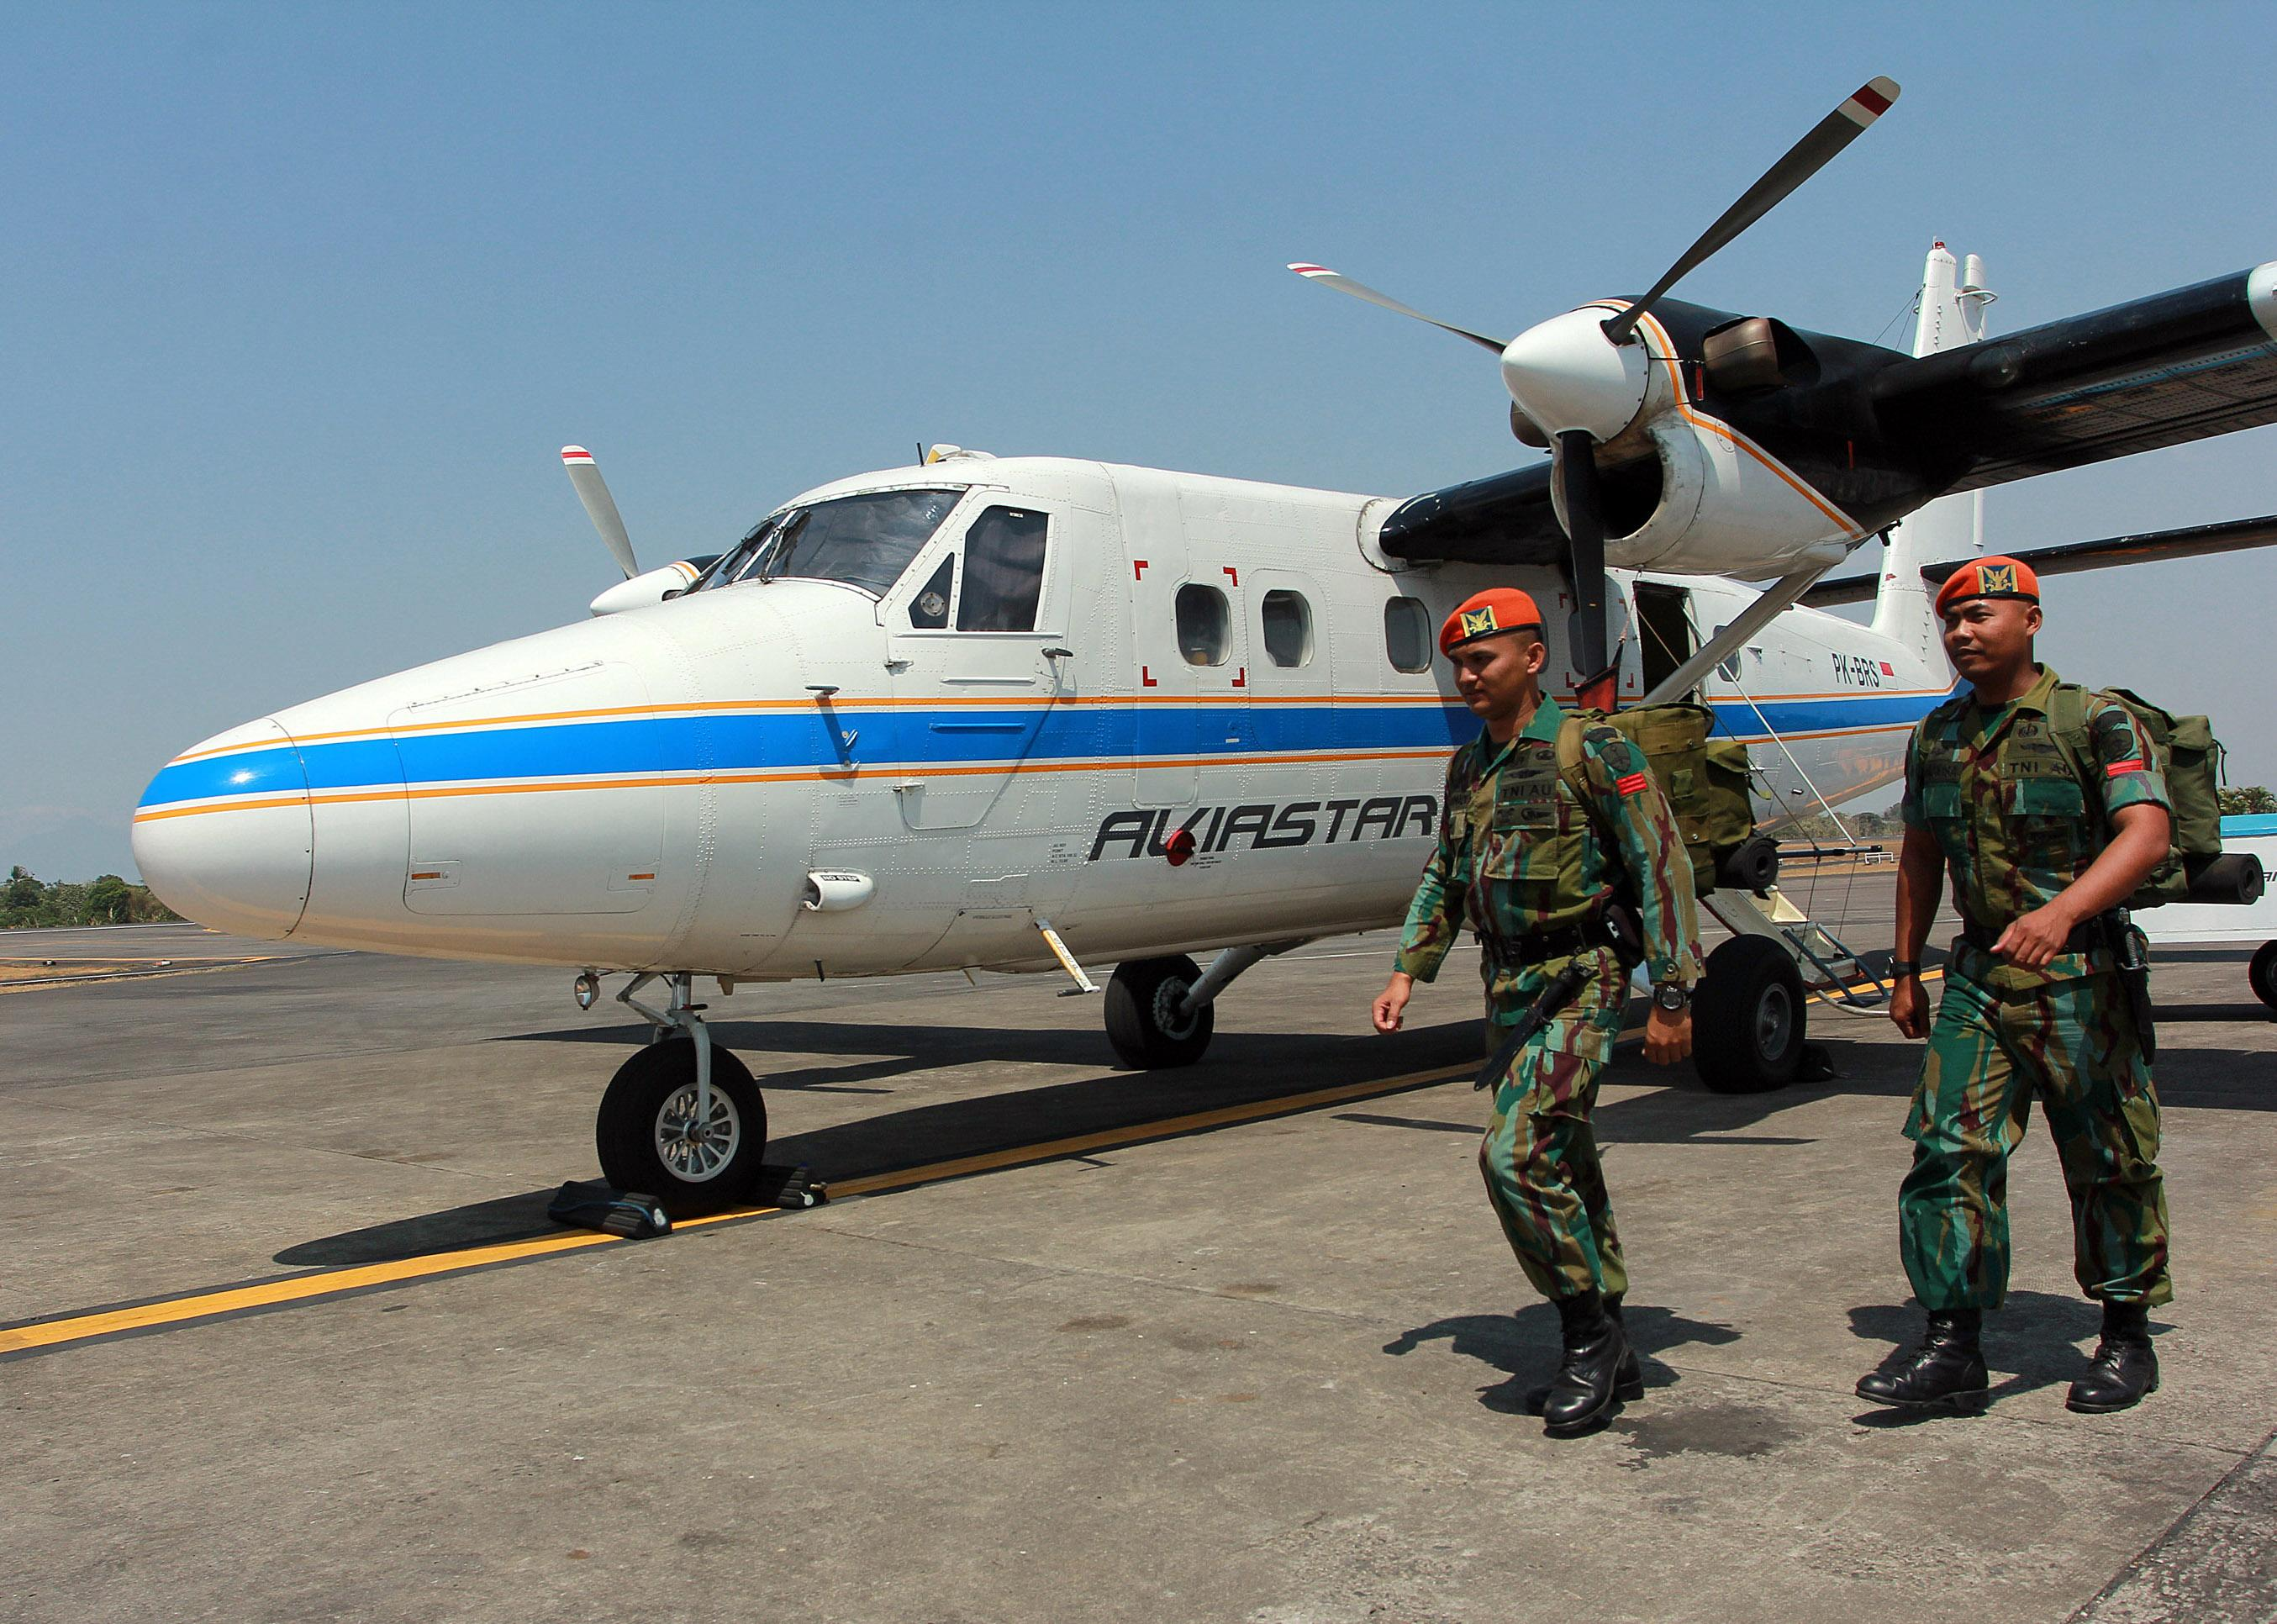 Search fails to locate missing Indonesian plane for 2nd day